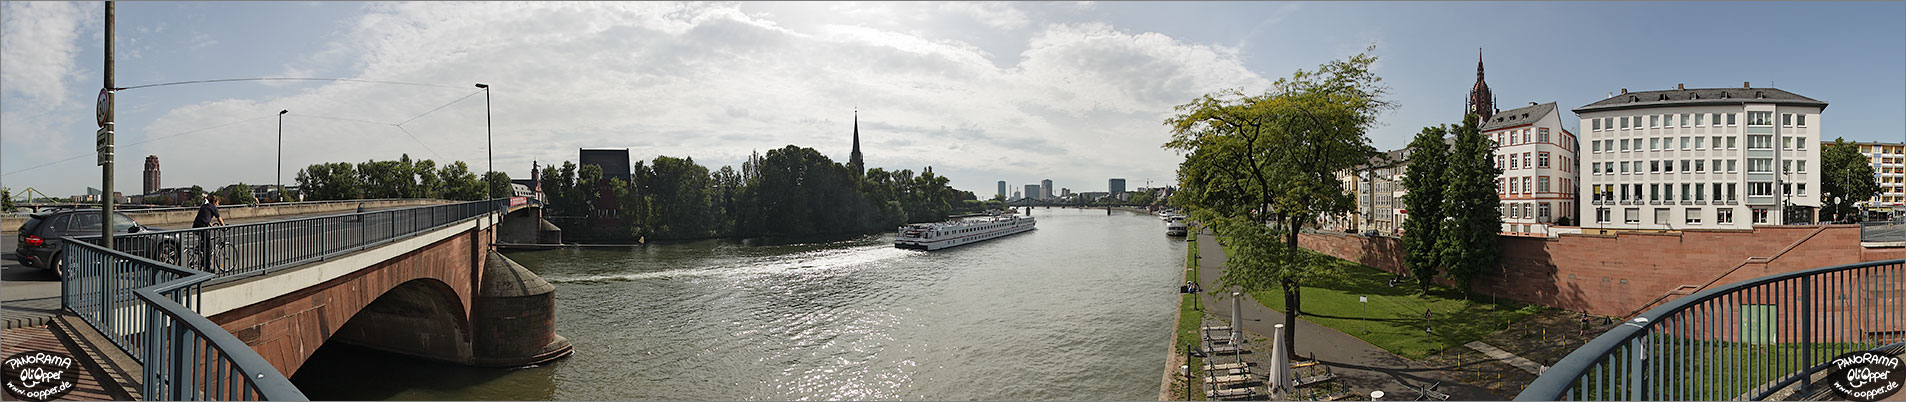 Panorama Frankfurt am Main - Alte Br�cke - p1134 - (c) by Oliver Opper